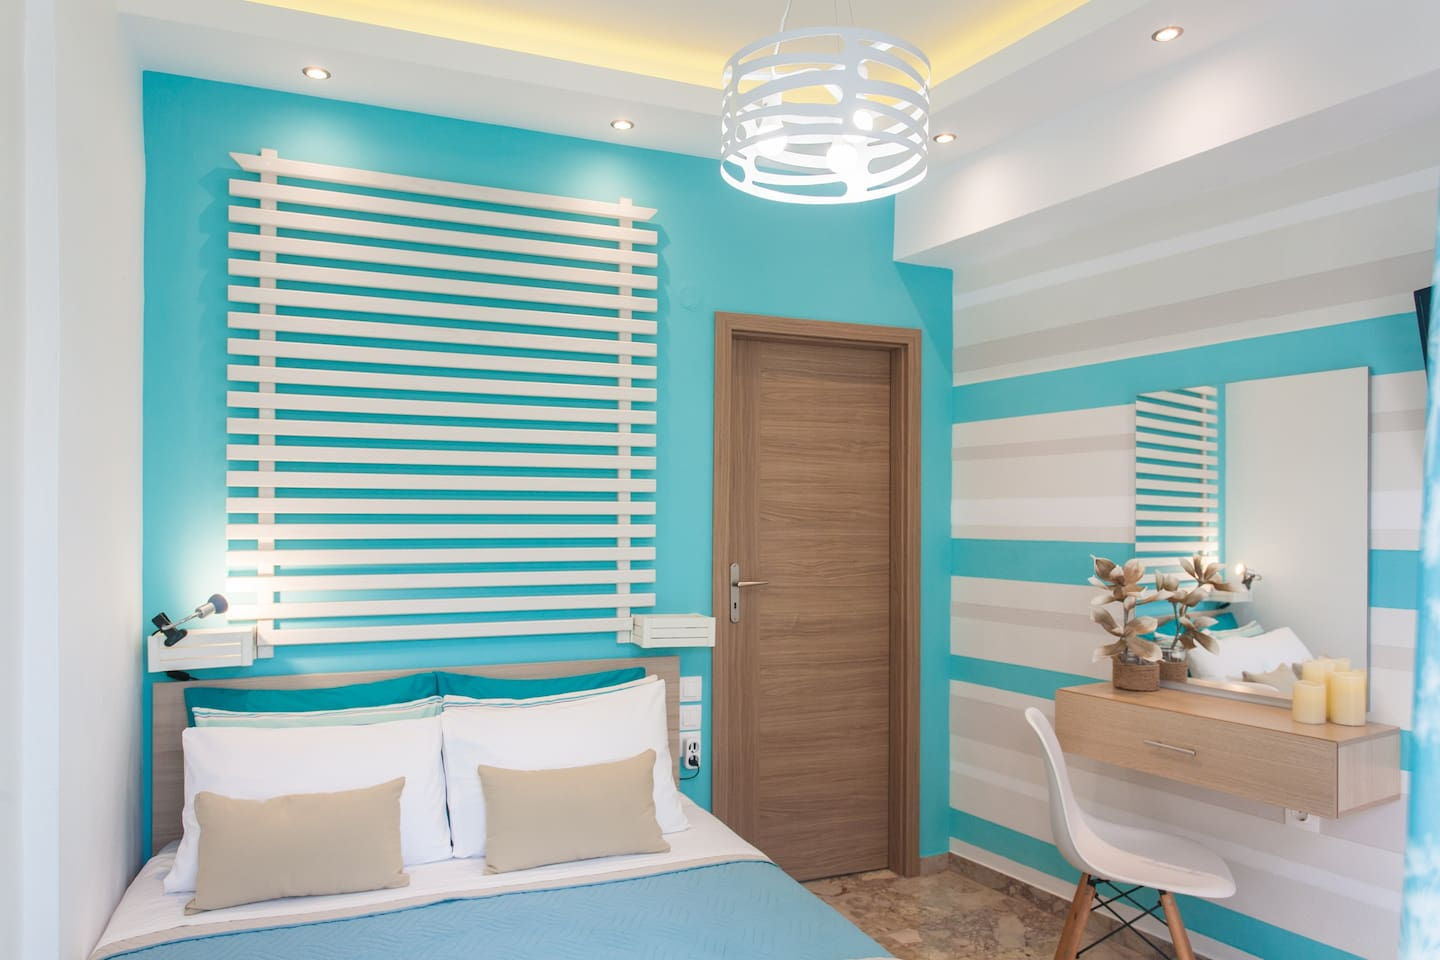 The main bedroom with a double bed,nice colors and romantic lights!